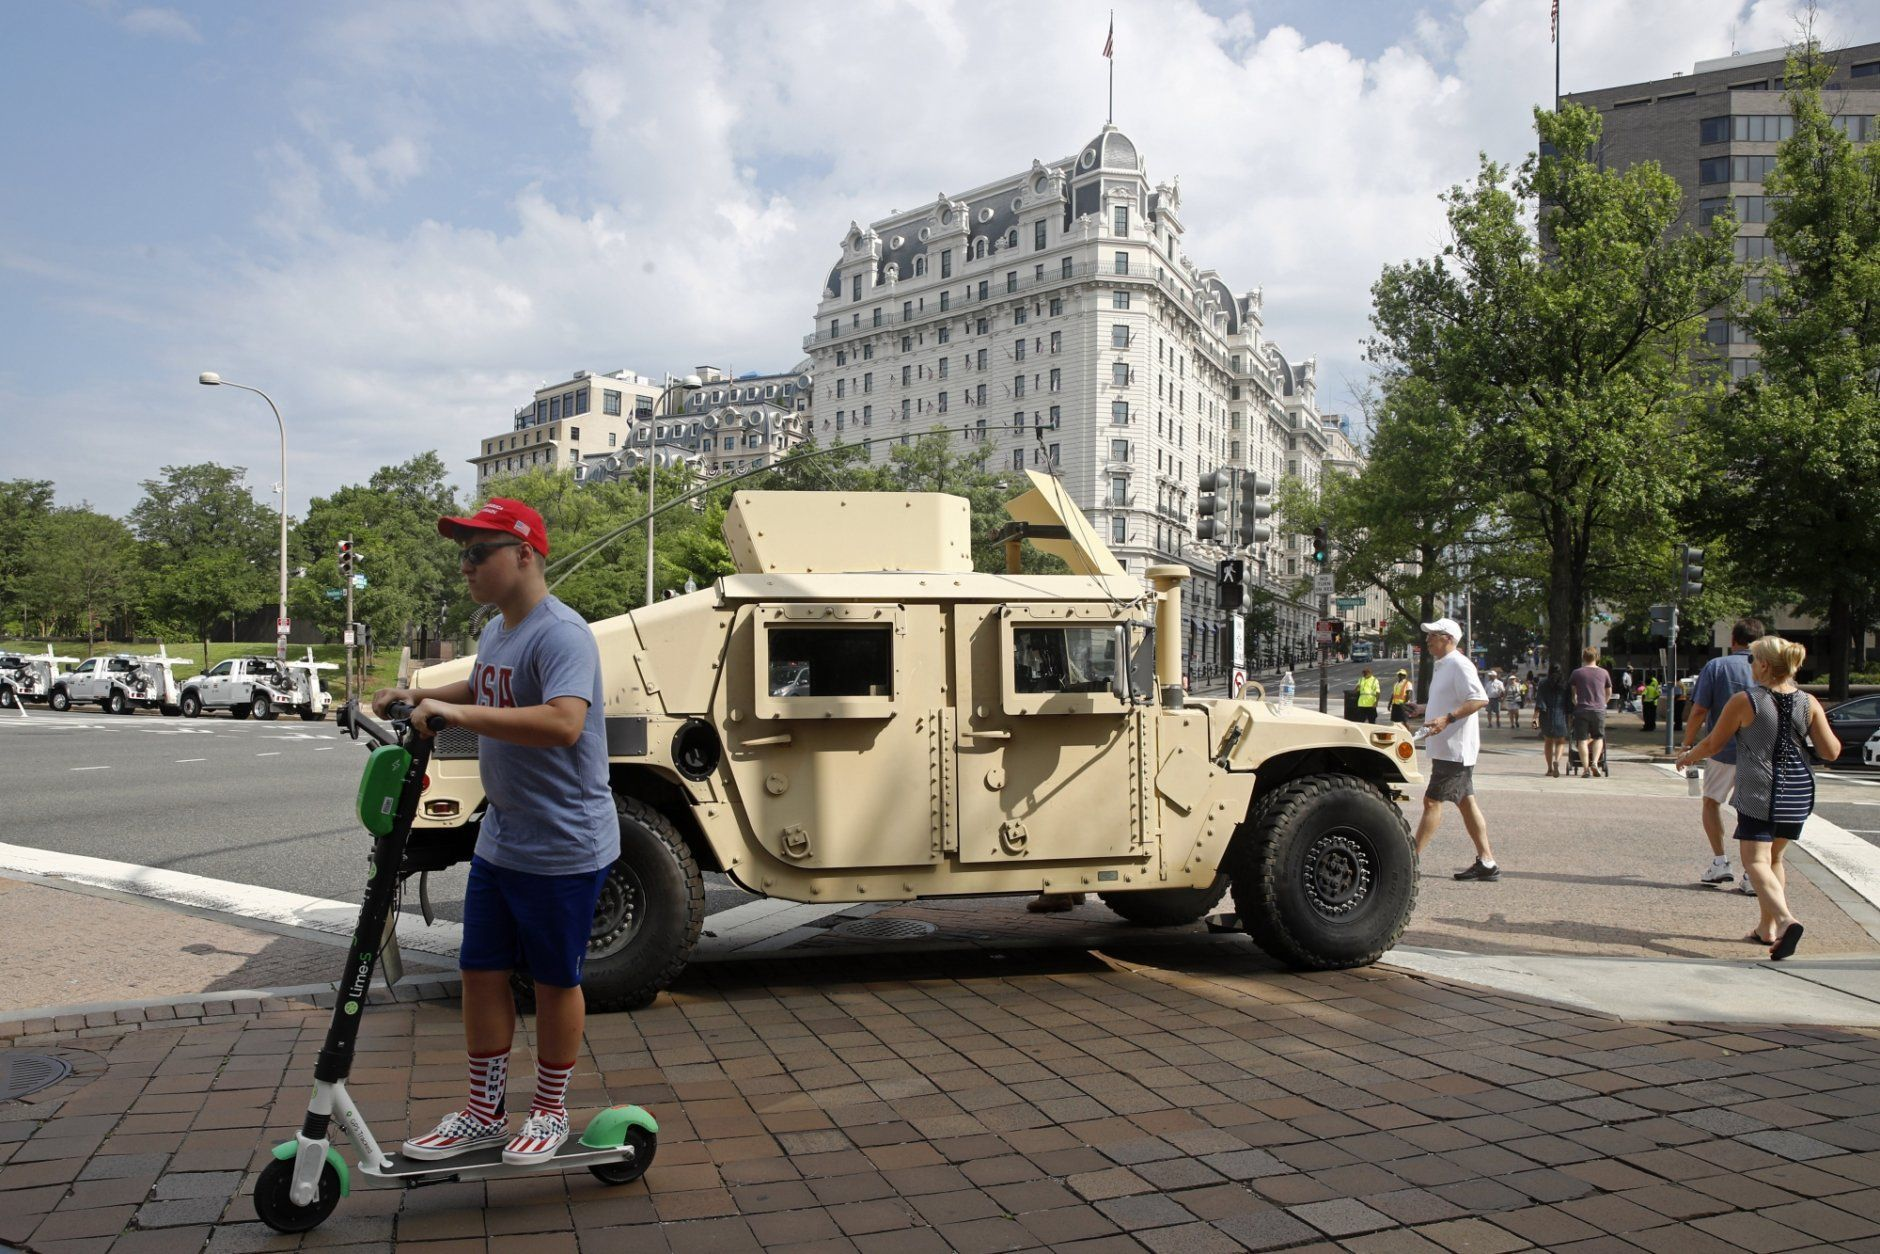 A National Guard vehicle sits parked at a security perimeter near the National Mall in Washington before Independence Day celebrations, Thursday, July 4, 2019. (AP Photo/Patrick Semansky)